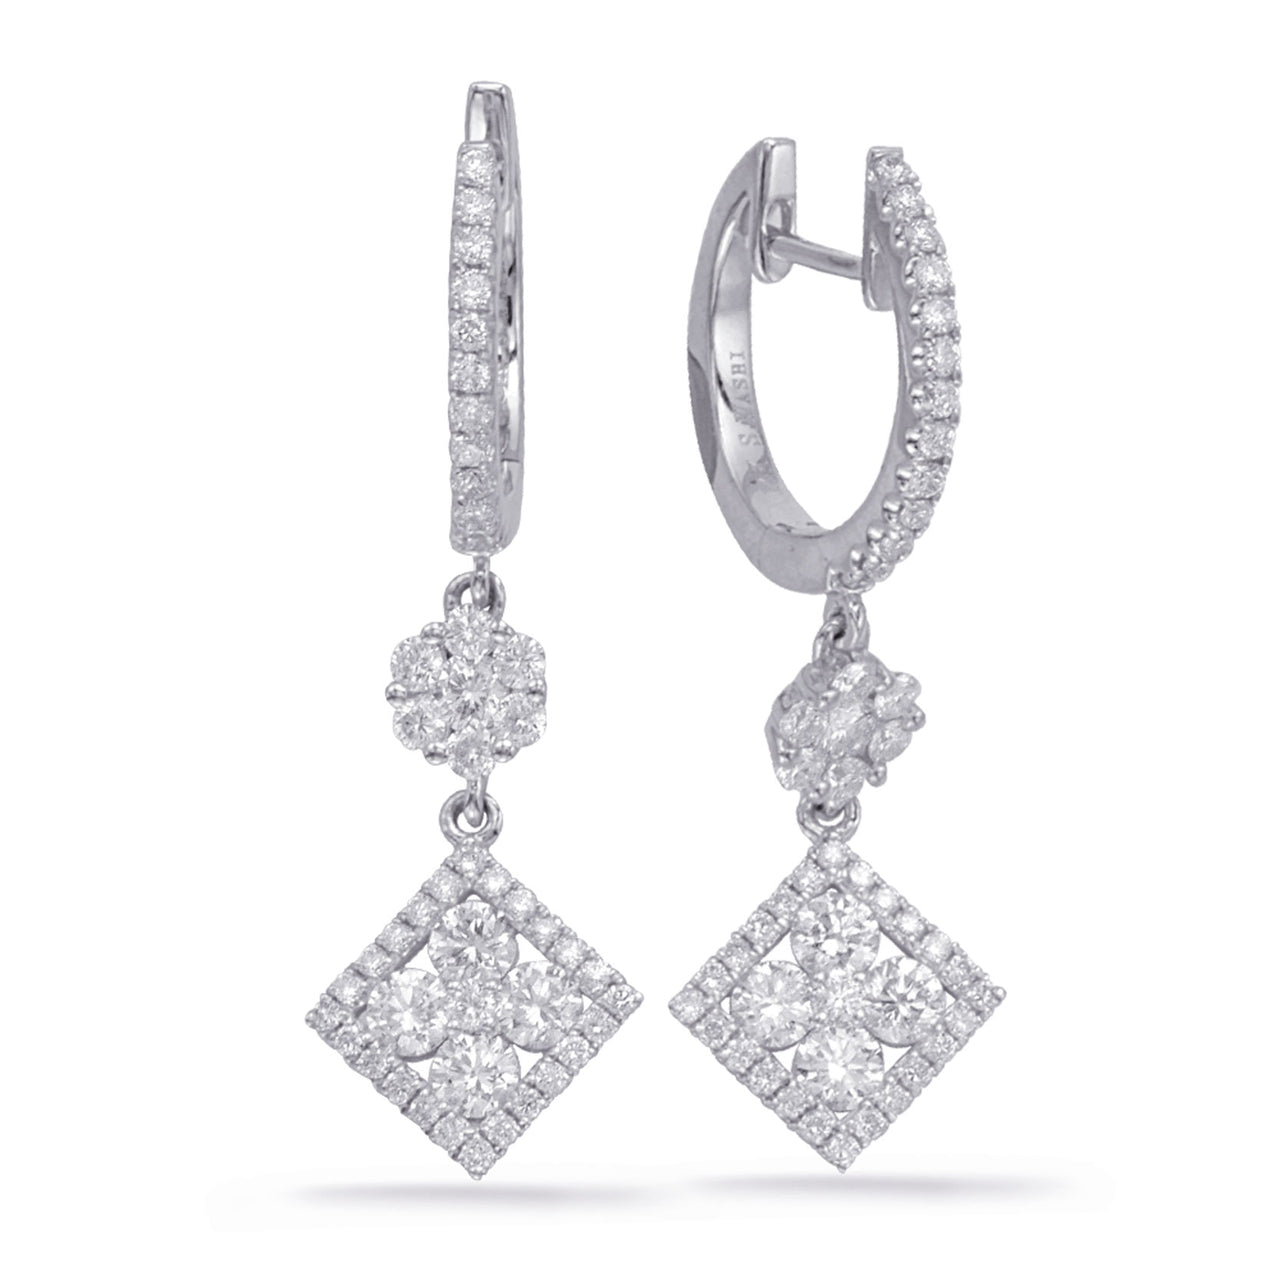 14K White gold and Diamond Earrings.#1090-E7997WG